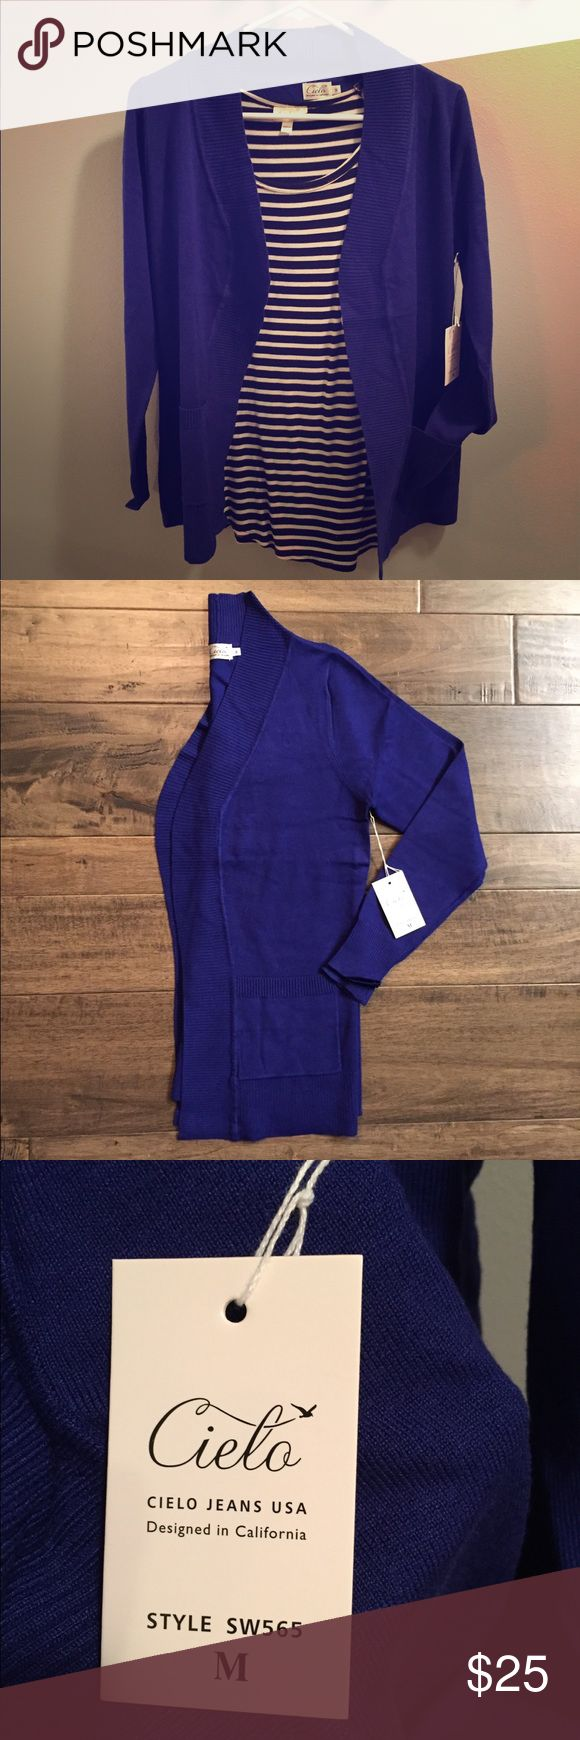 Cielo Royal Blue Cardigan NWT. Cielo Royal Blue Cardigan. Front Pockets. 🌸70% Viscose 30% Nylon 🌷Pet & Smoke Free Home Cielo Sweaters Cardigans